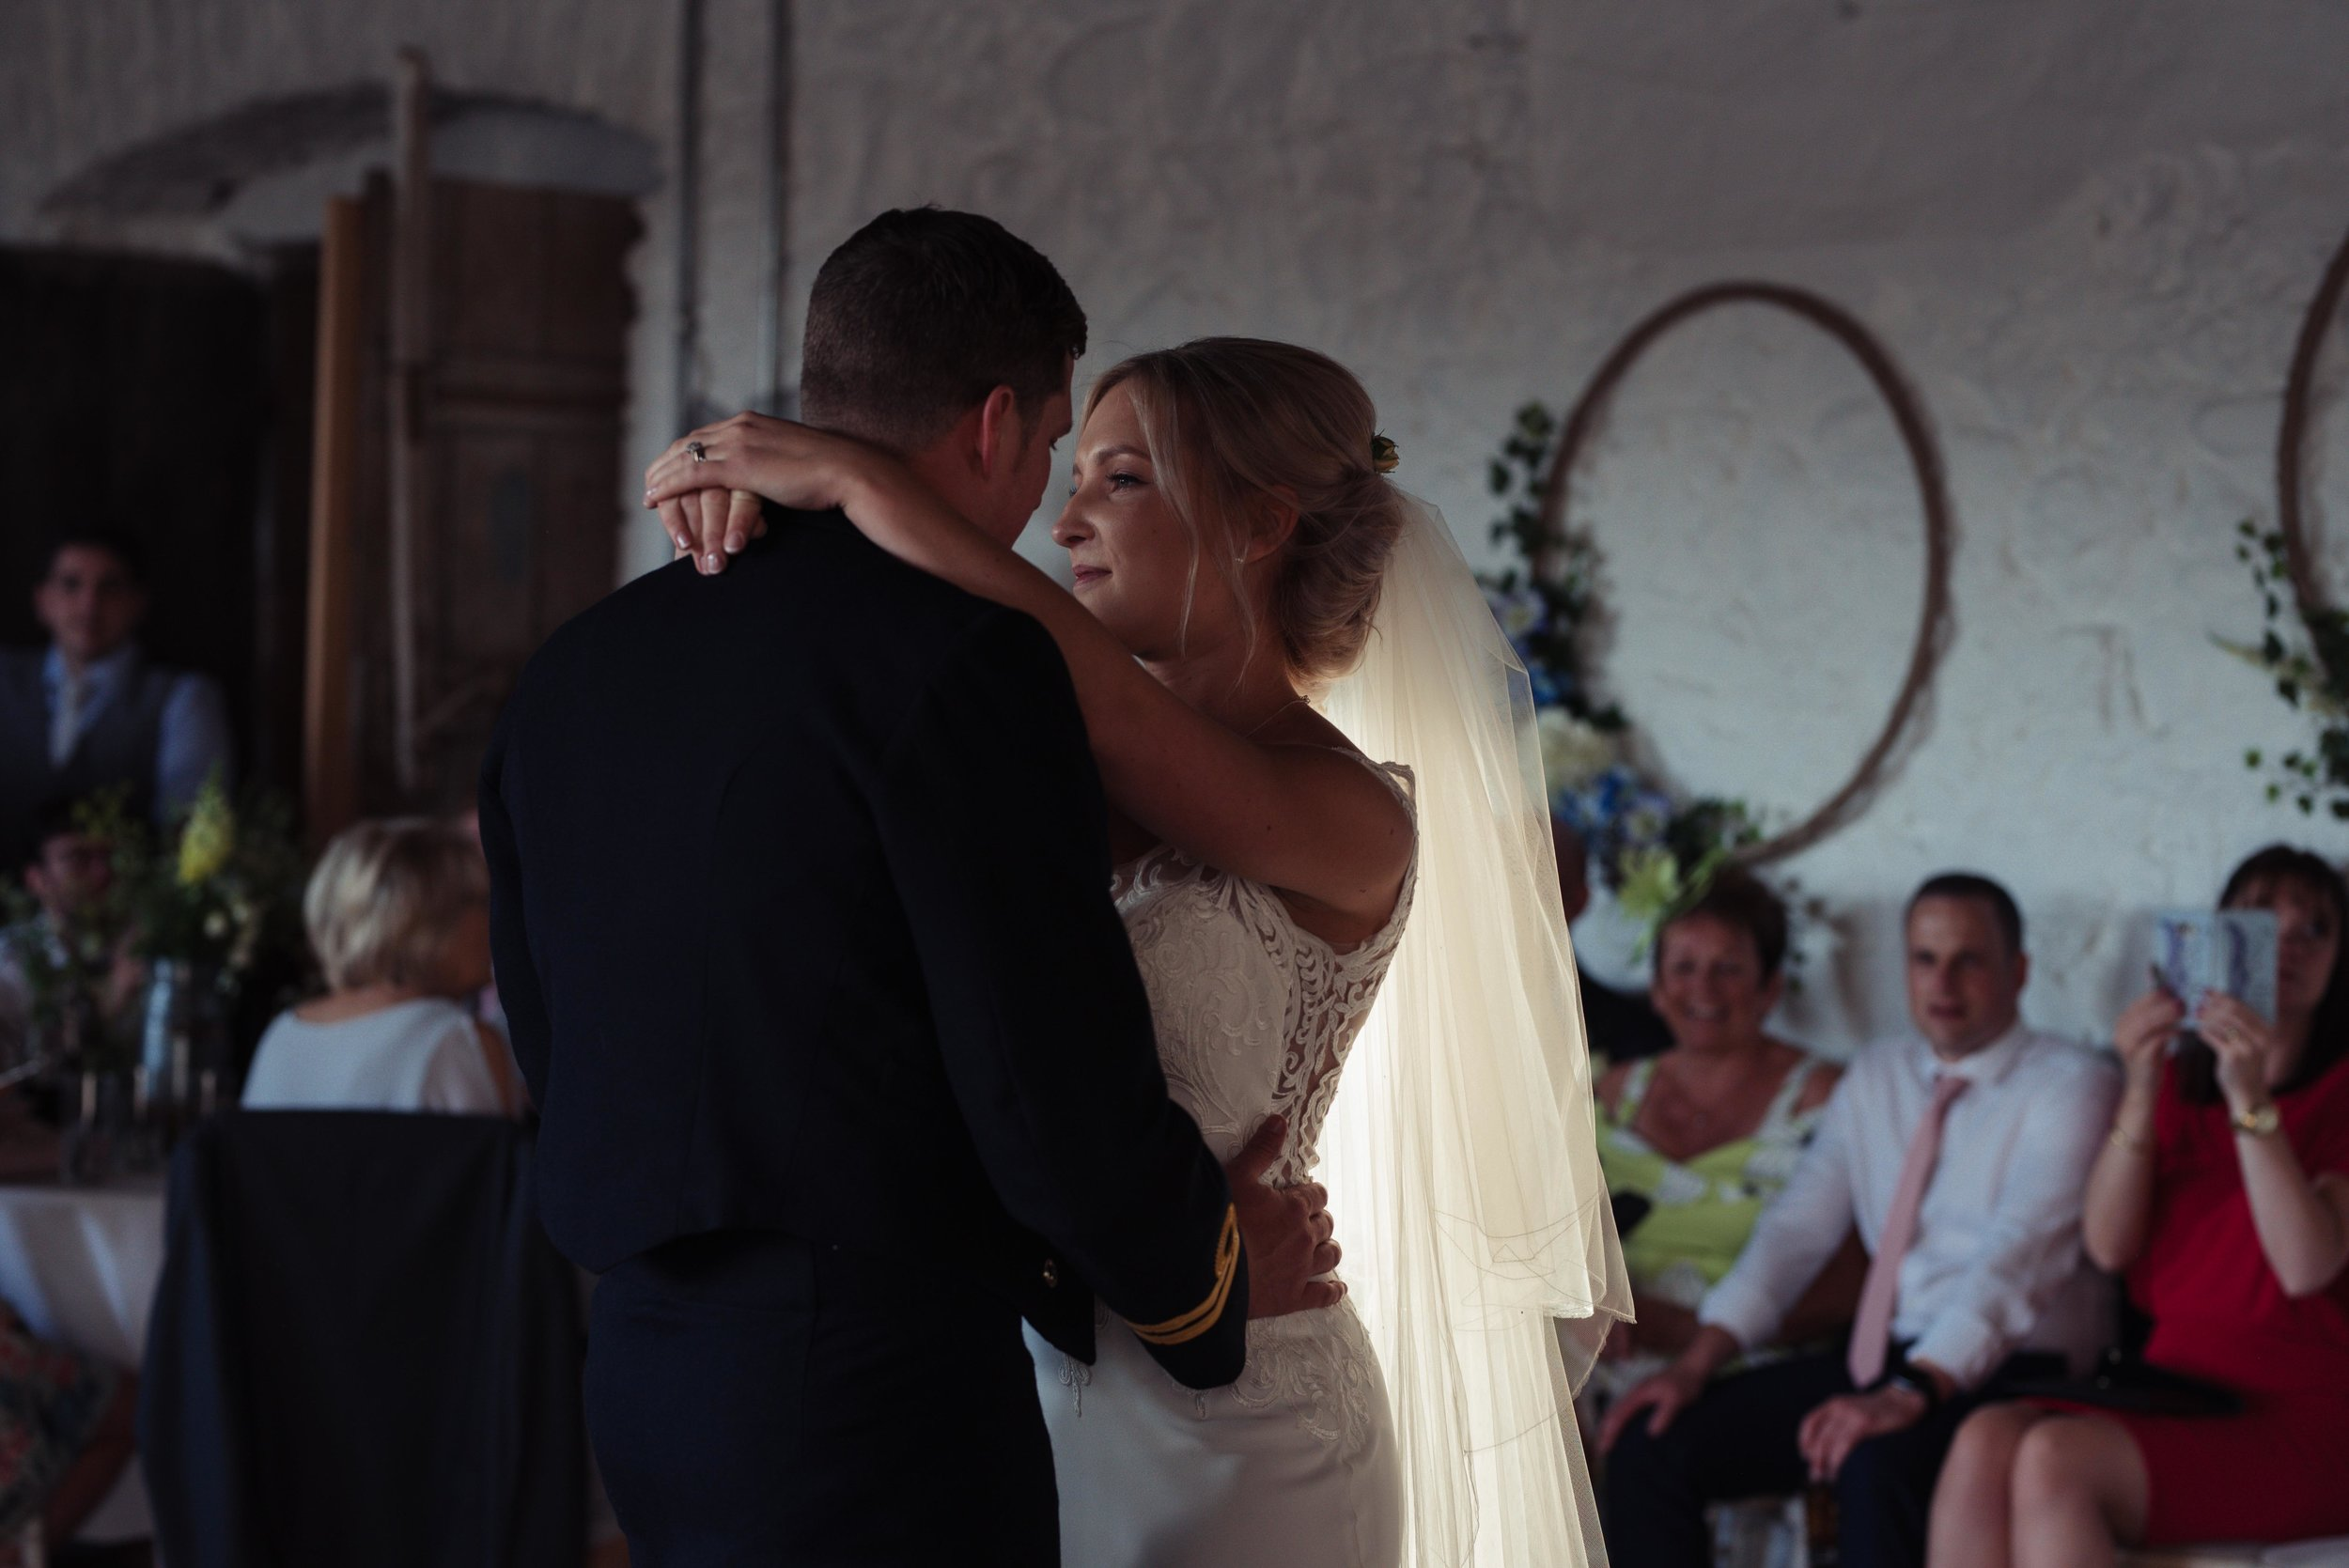 A sincere look of love during the bride and grooms first dance together